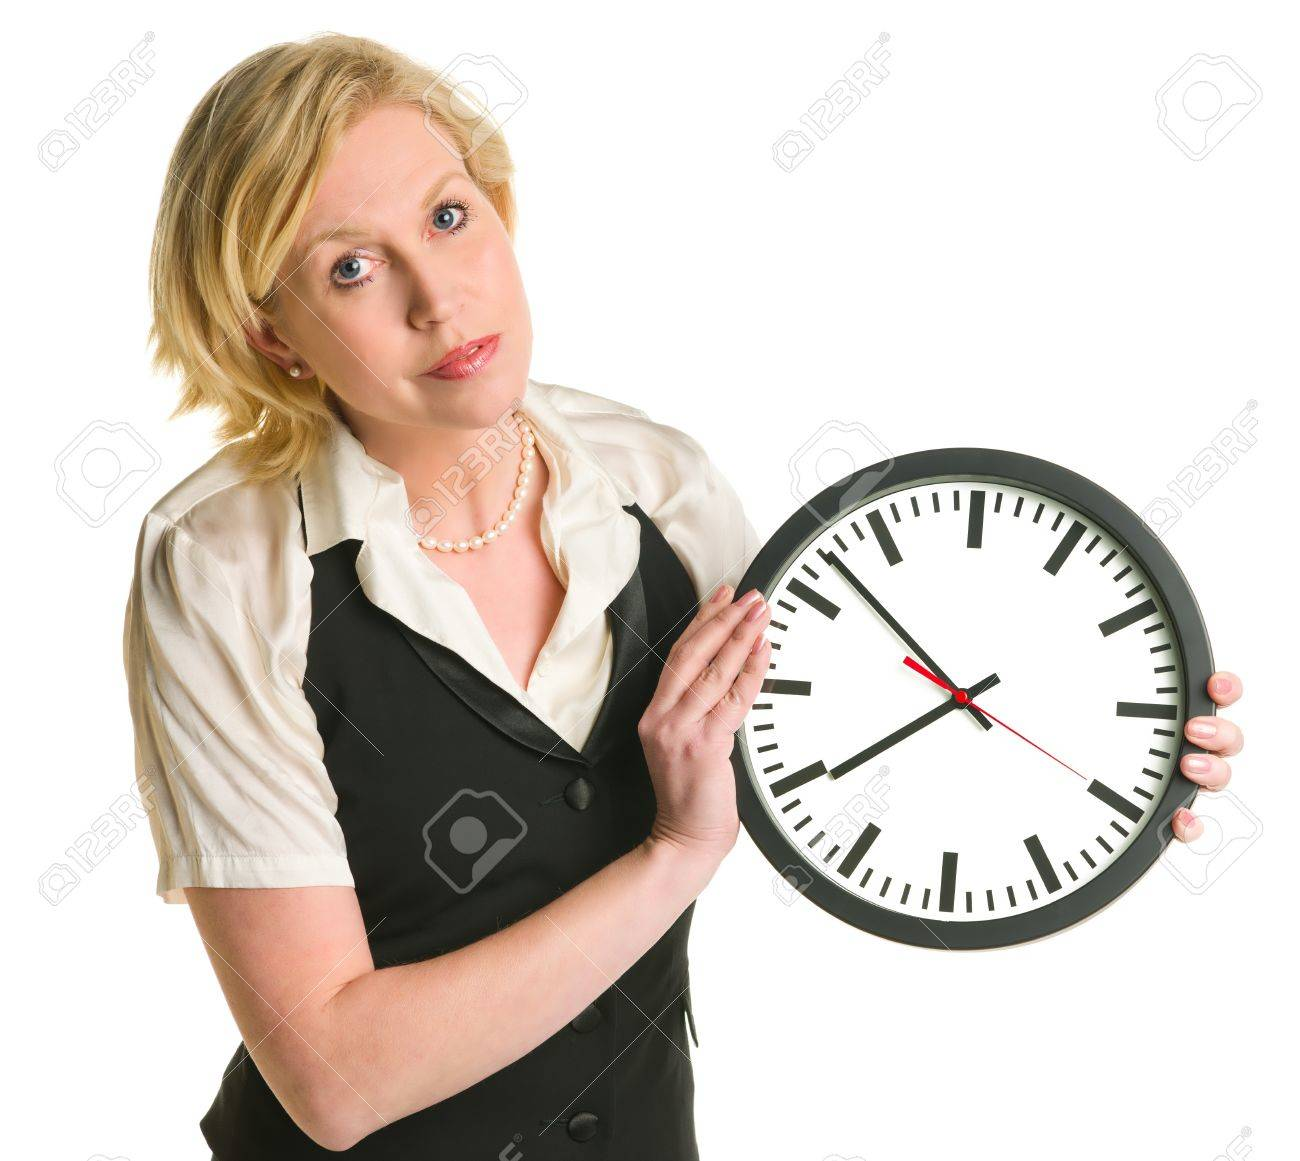 Woman holding and showing a clock, white isolated background. Stock Photo - 12300061